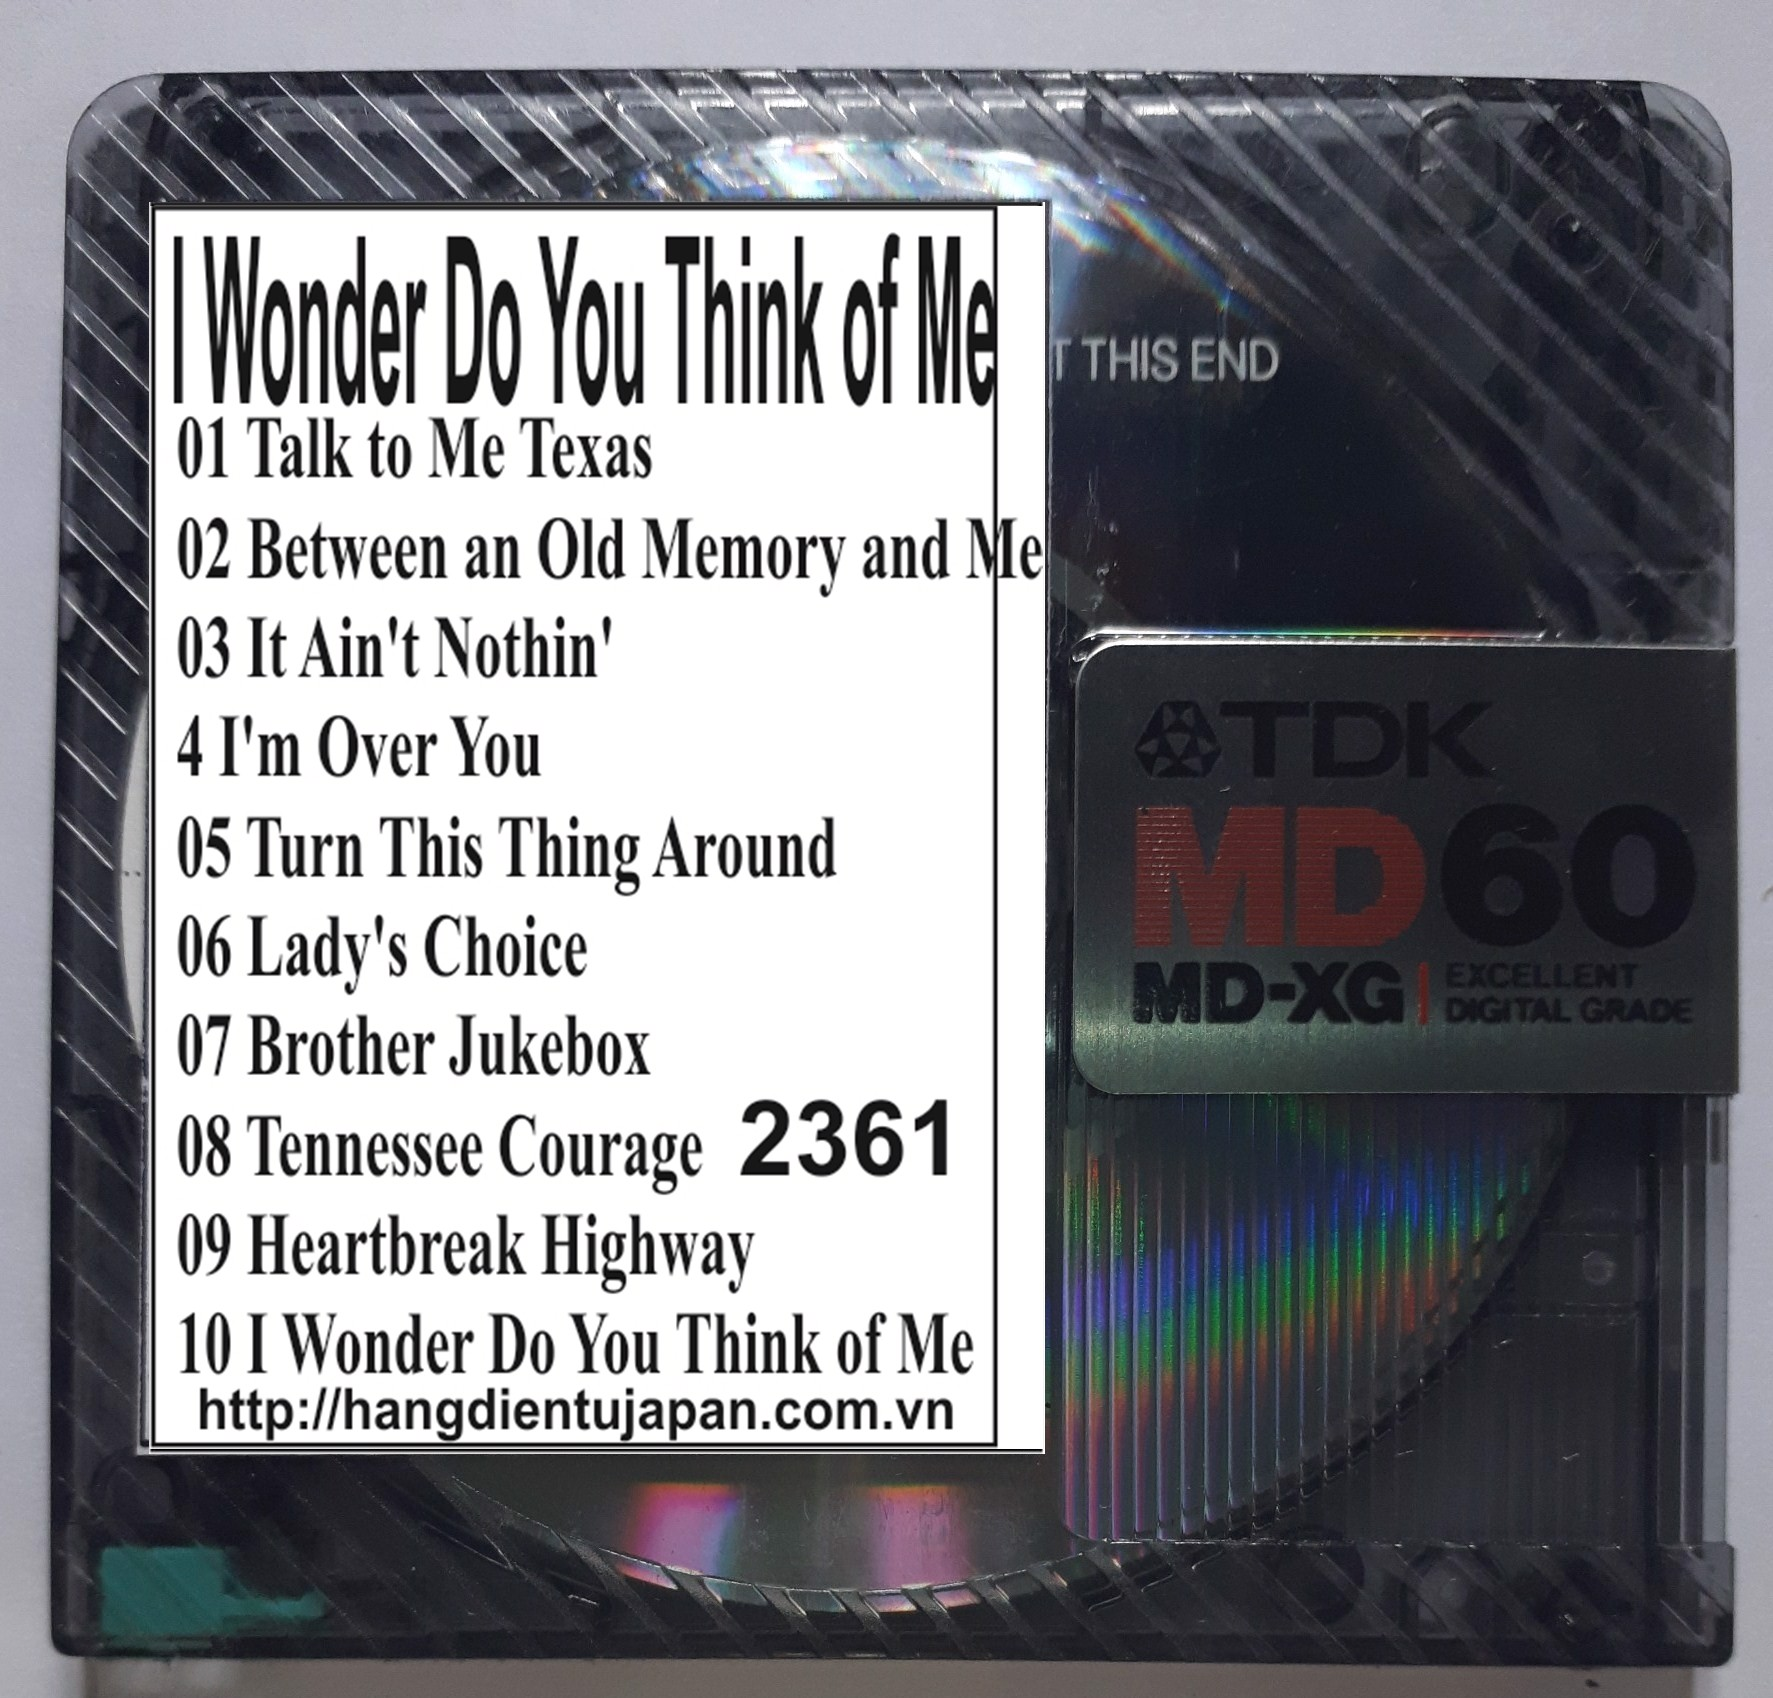 2361.Keith Whitley - I Wonder Do You Think of Me